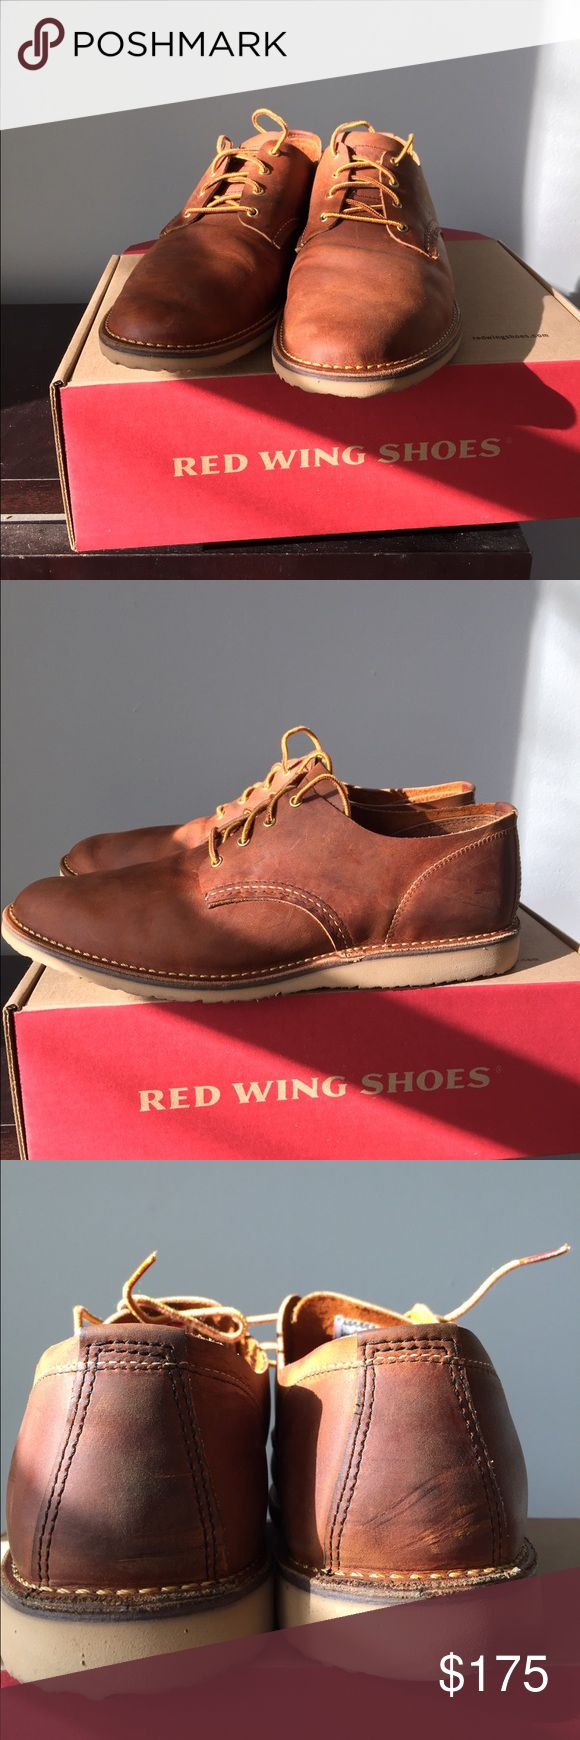 Gently Used Red Wing Heritage Weekender Oxford Gently used pair of Red Wing Weekender Oxfords. Worn once and realized they were too big. Added metal eyelets to the lace eyelets so they can't be returned. Love them but they just don't fit me (smaller pair is already on order!) Red Wing Shoes Shoes Oxfords & Derbys